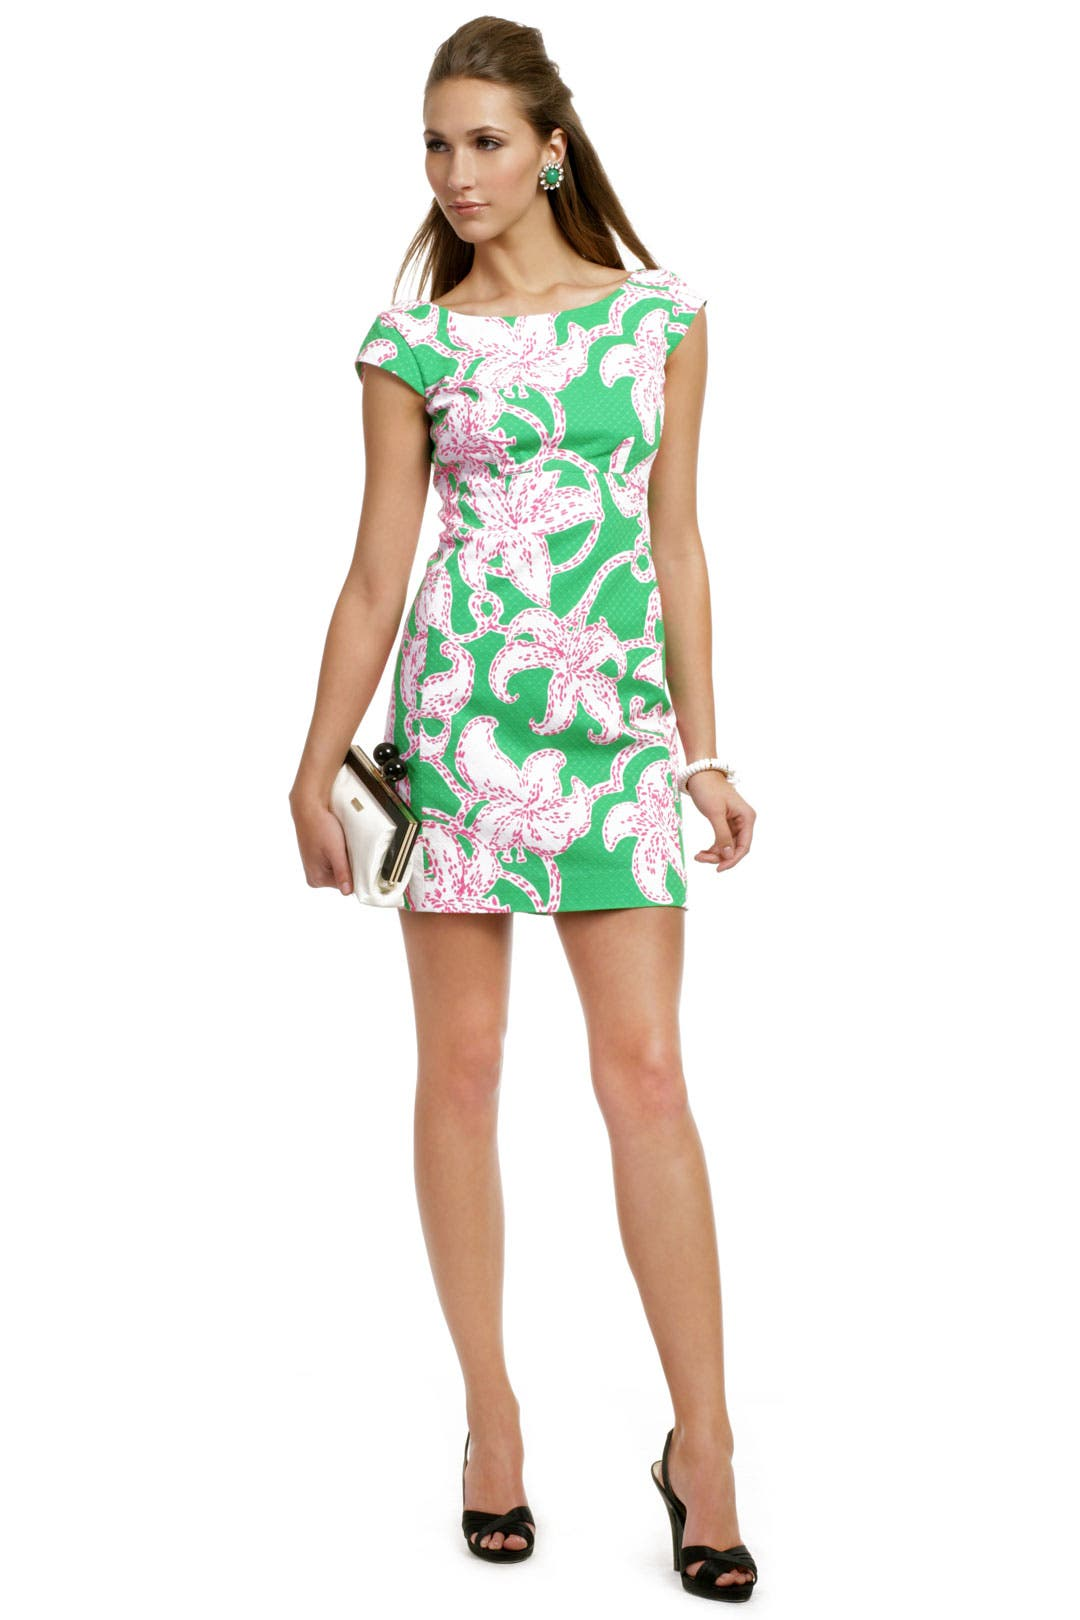 Sale Lilly Pulitzer Dresses Online Sale